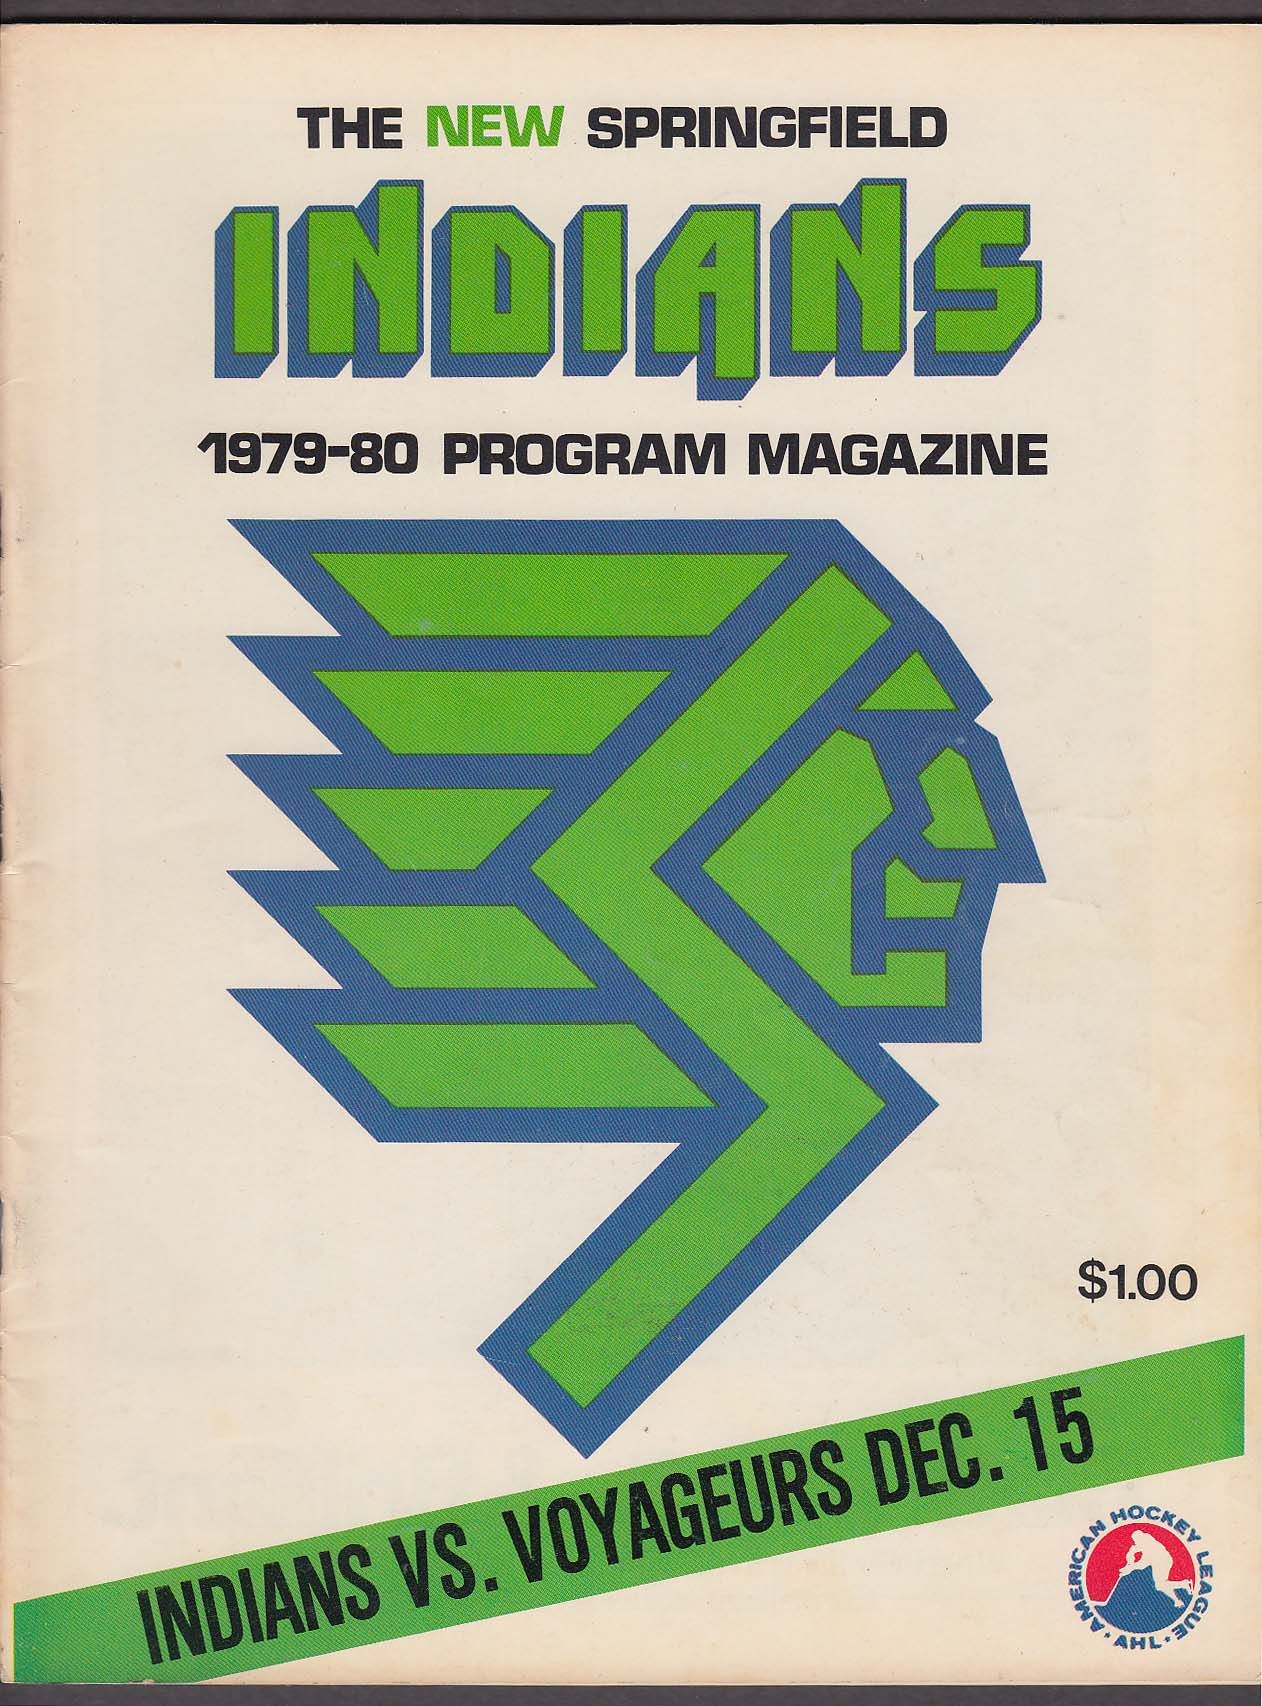 New Springfield Indians vs Voyagers 12/15 1979 program magazine unscored